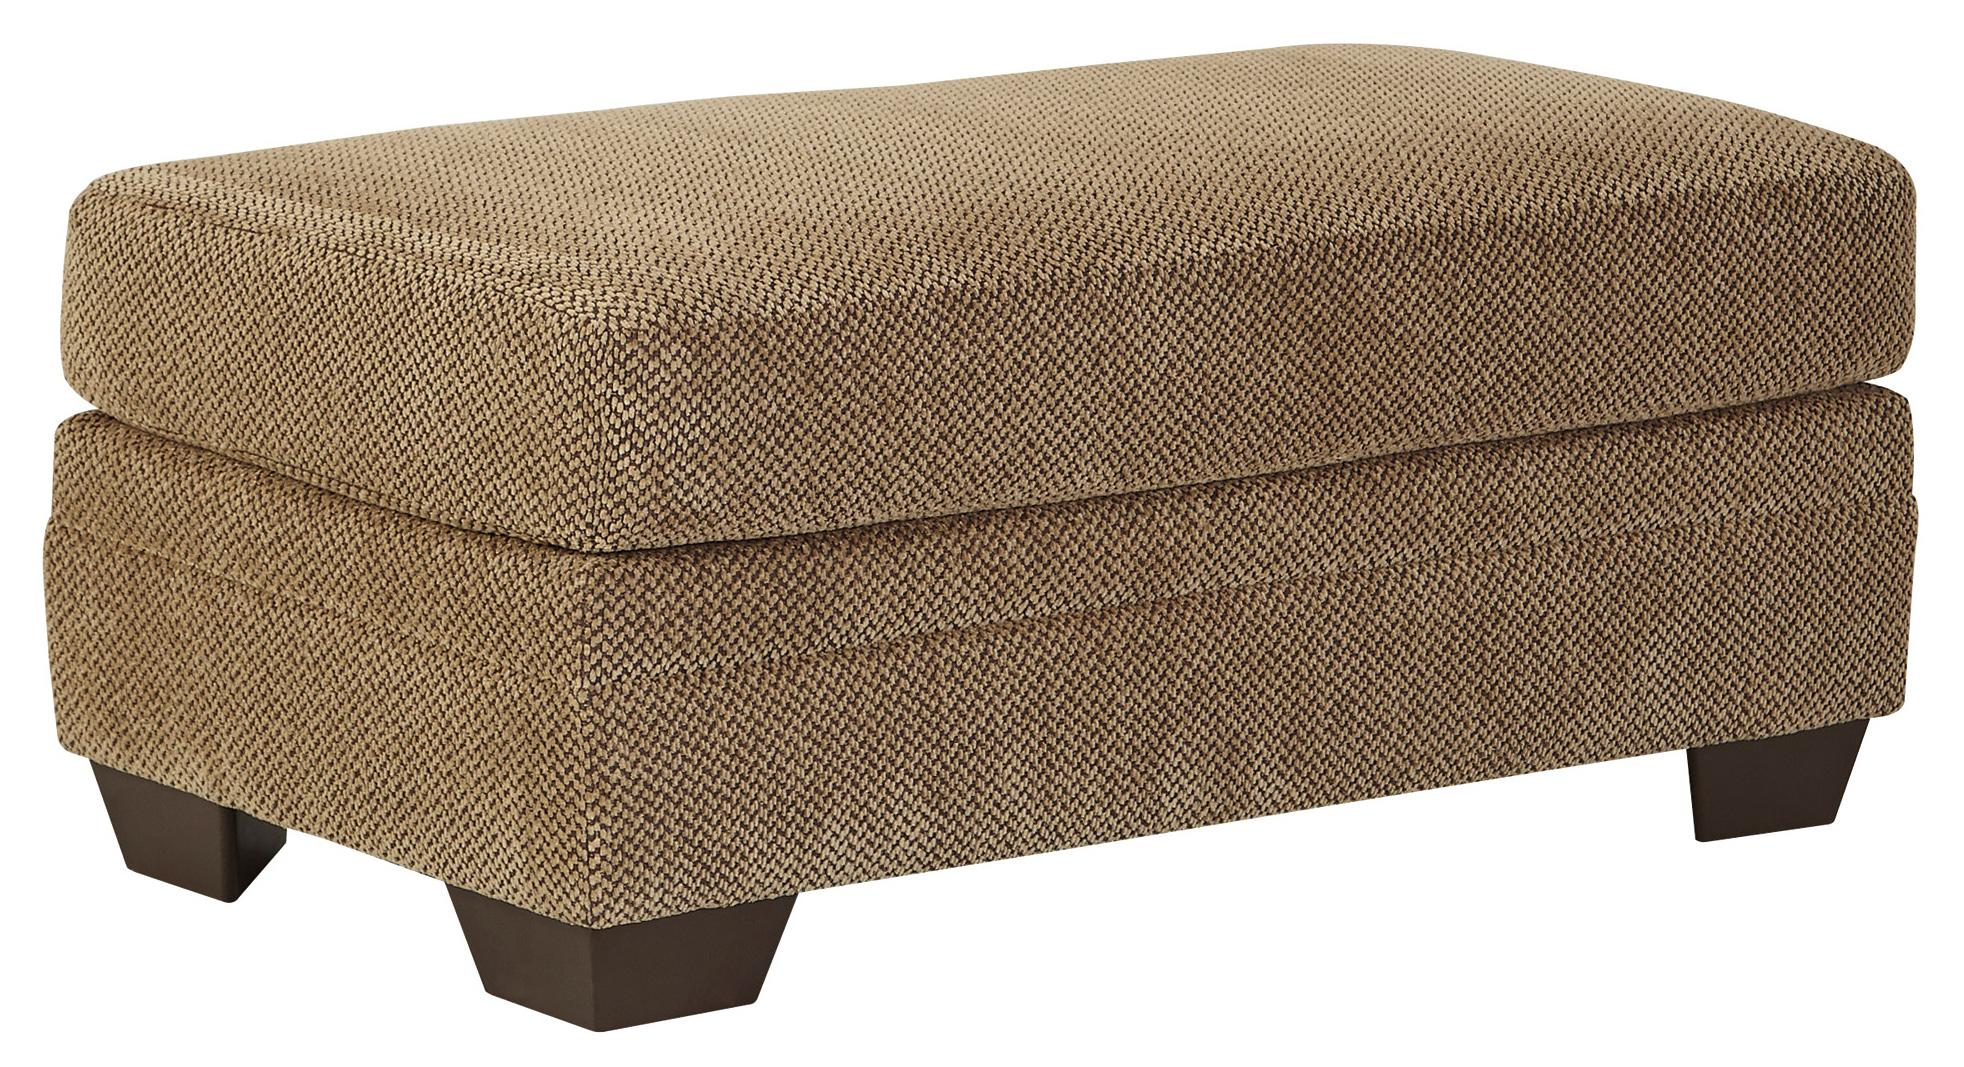 Signature Design by Ashley Kelemen - Amber Ottoman - Item Number: 4710014